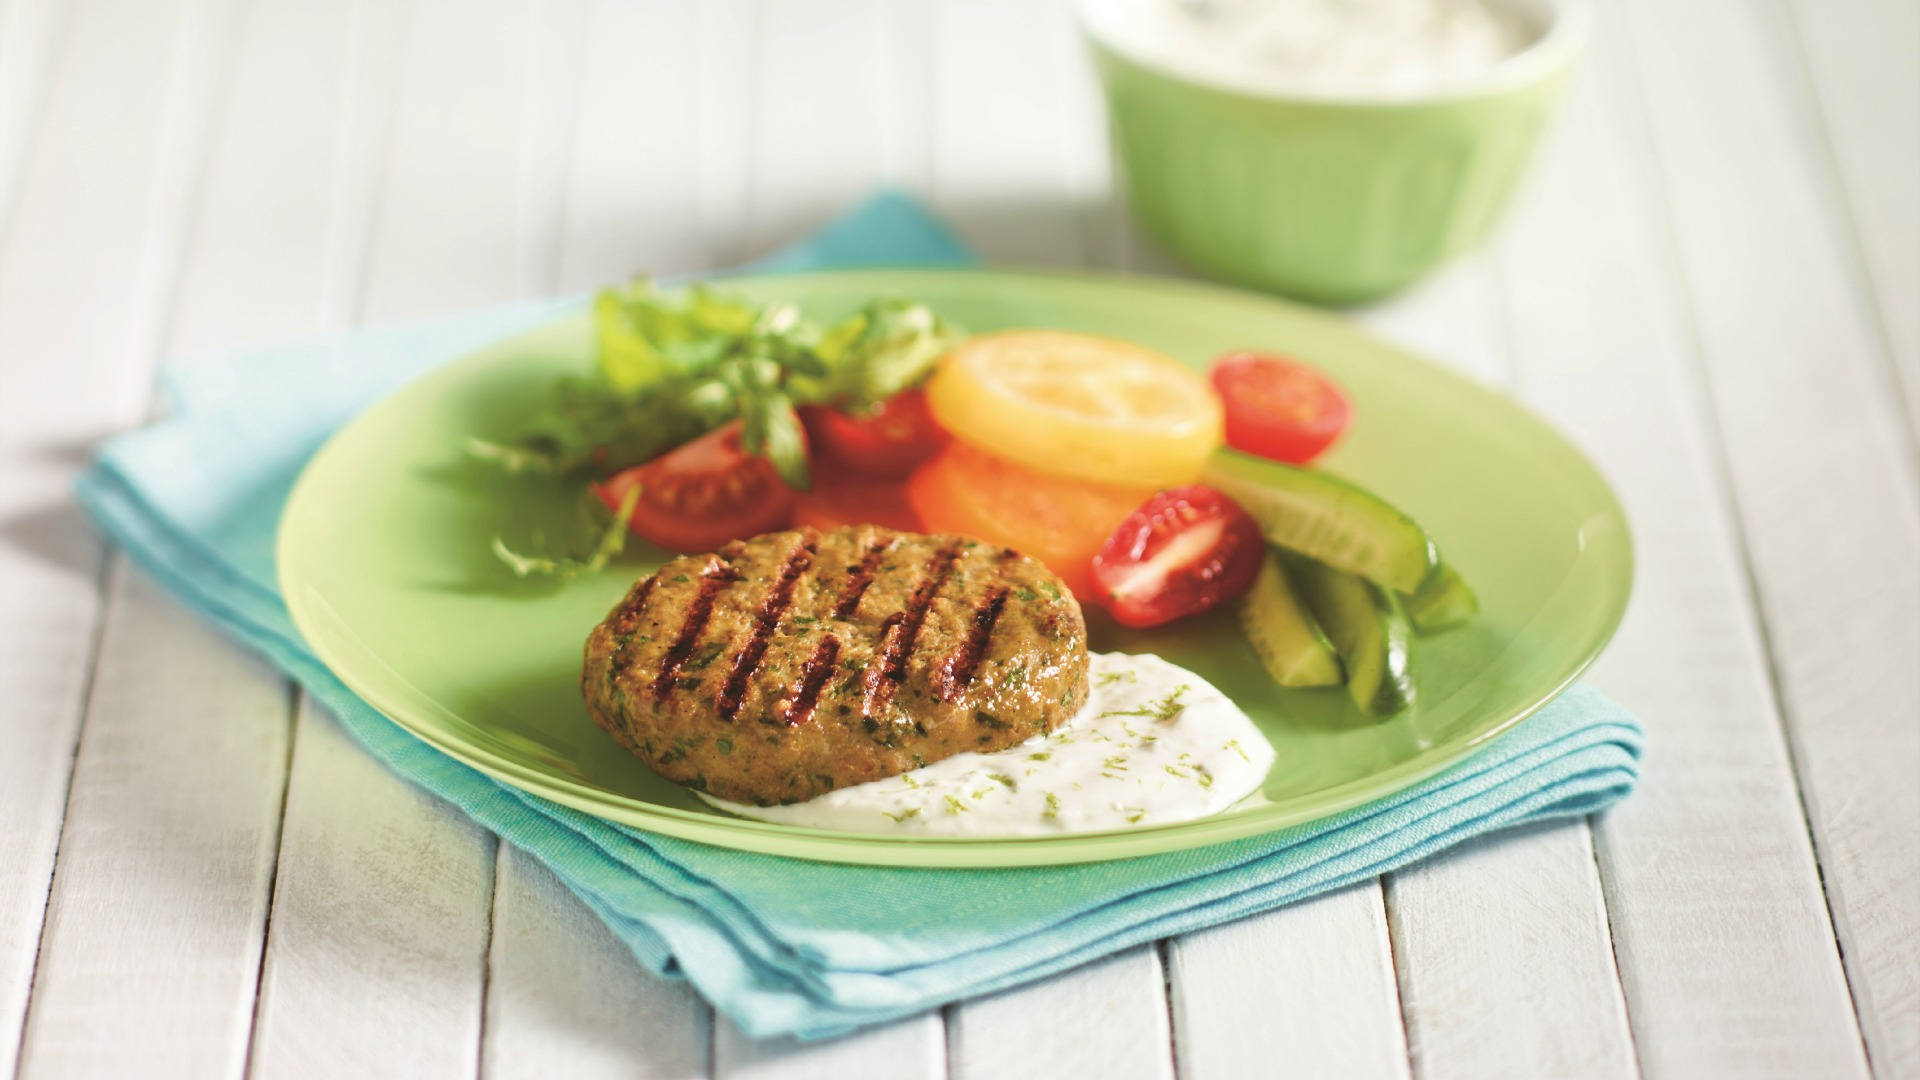 Barbequed curried chicken burgers with yogurt sauce and sliced vegetables